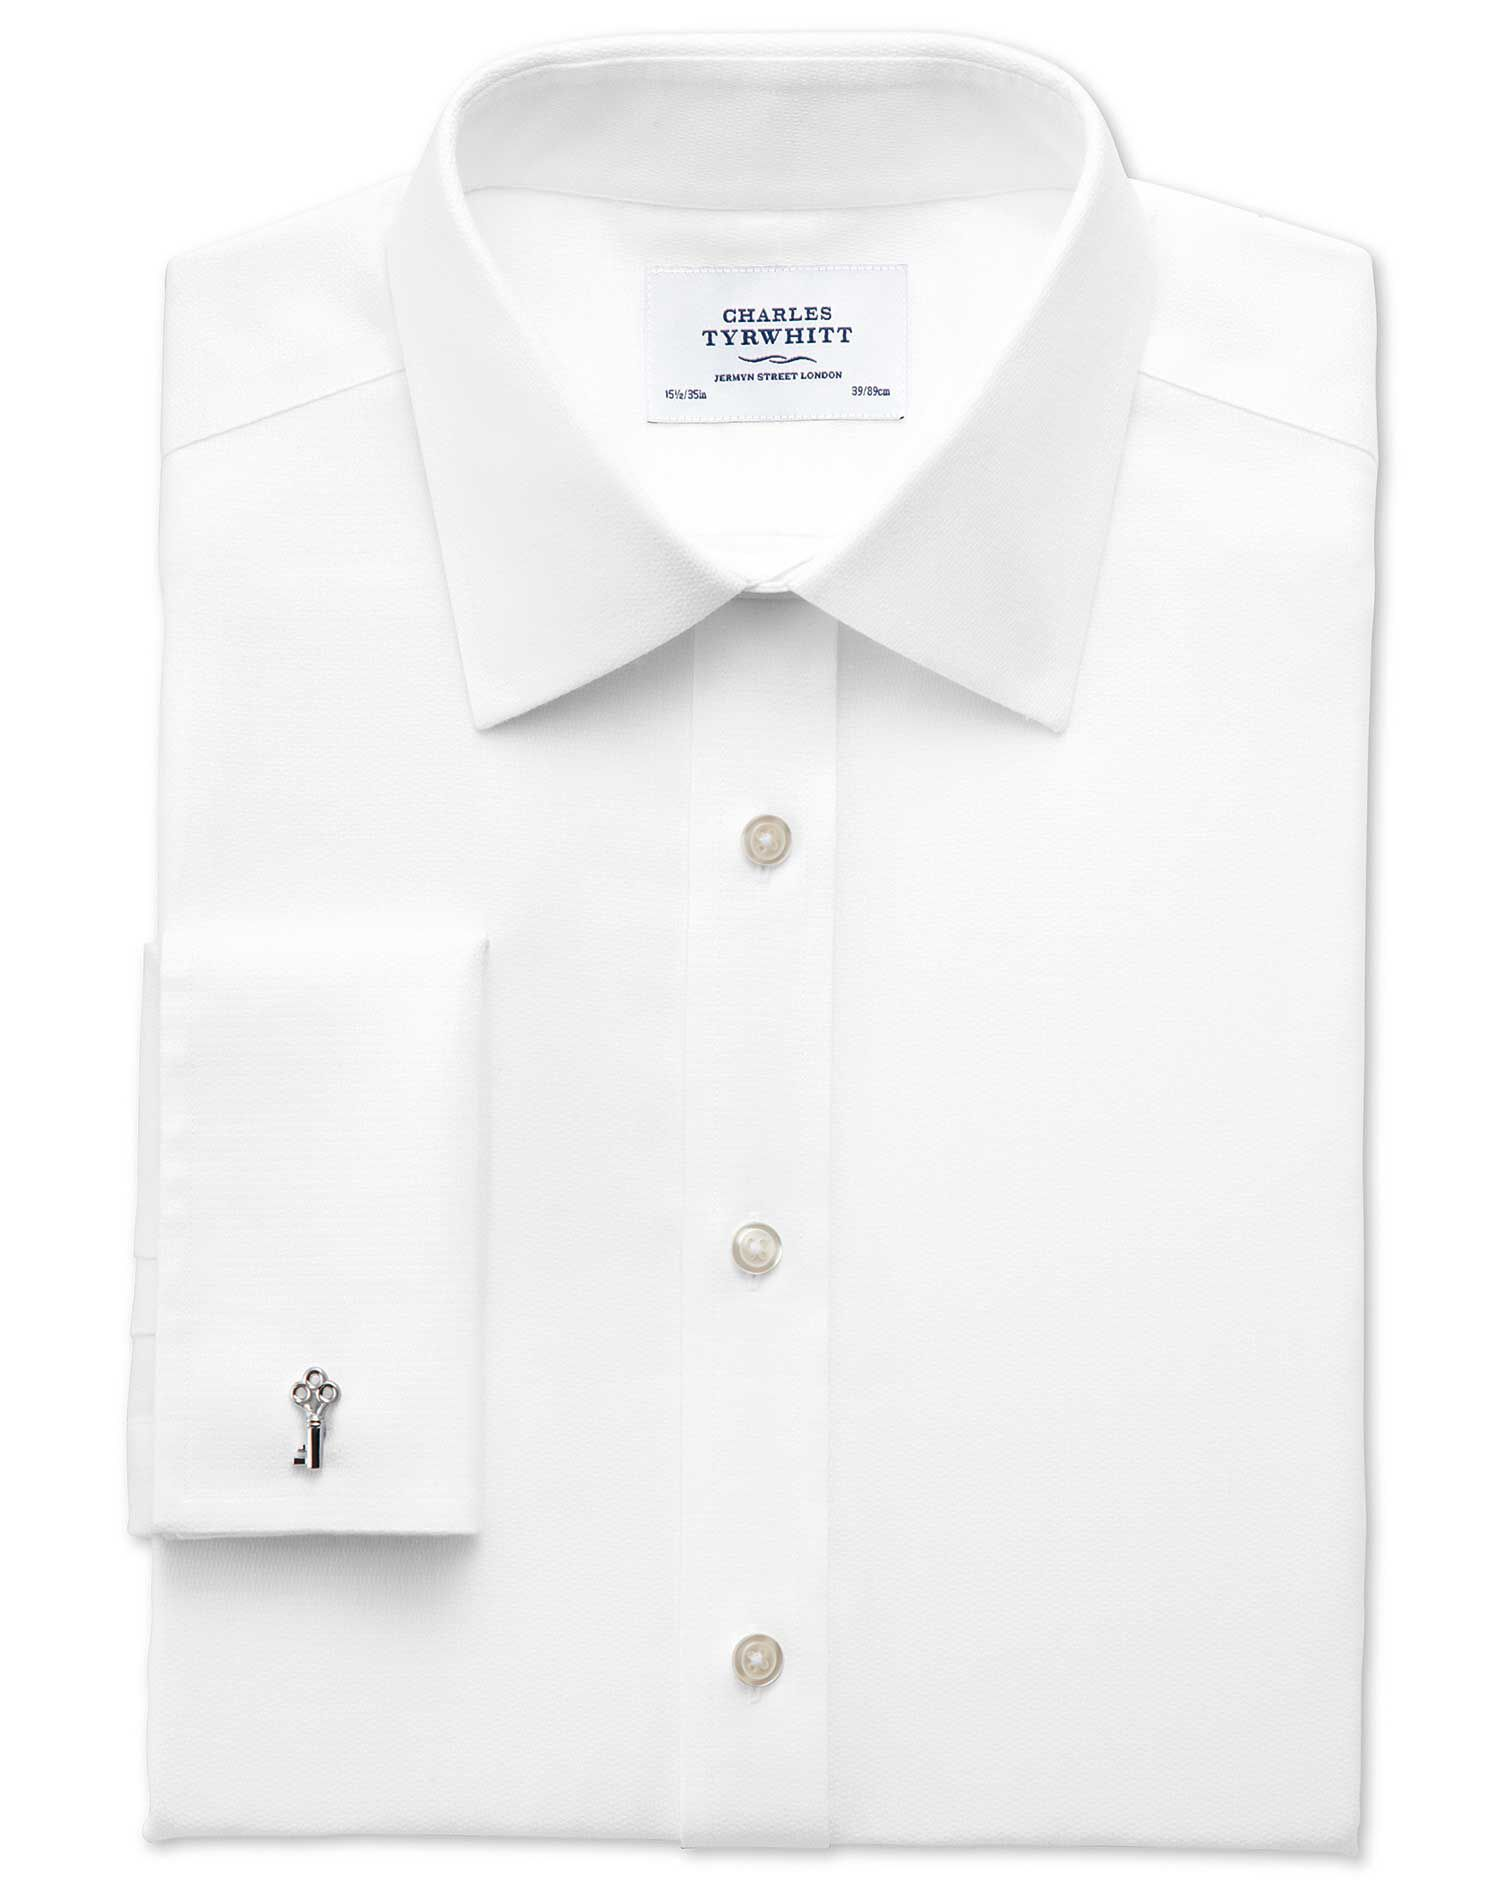 Charles Tyrwhitt Classic Fit Non Iron Imperial Weave White Cotton Formal Shirt Size 18/38